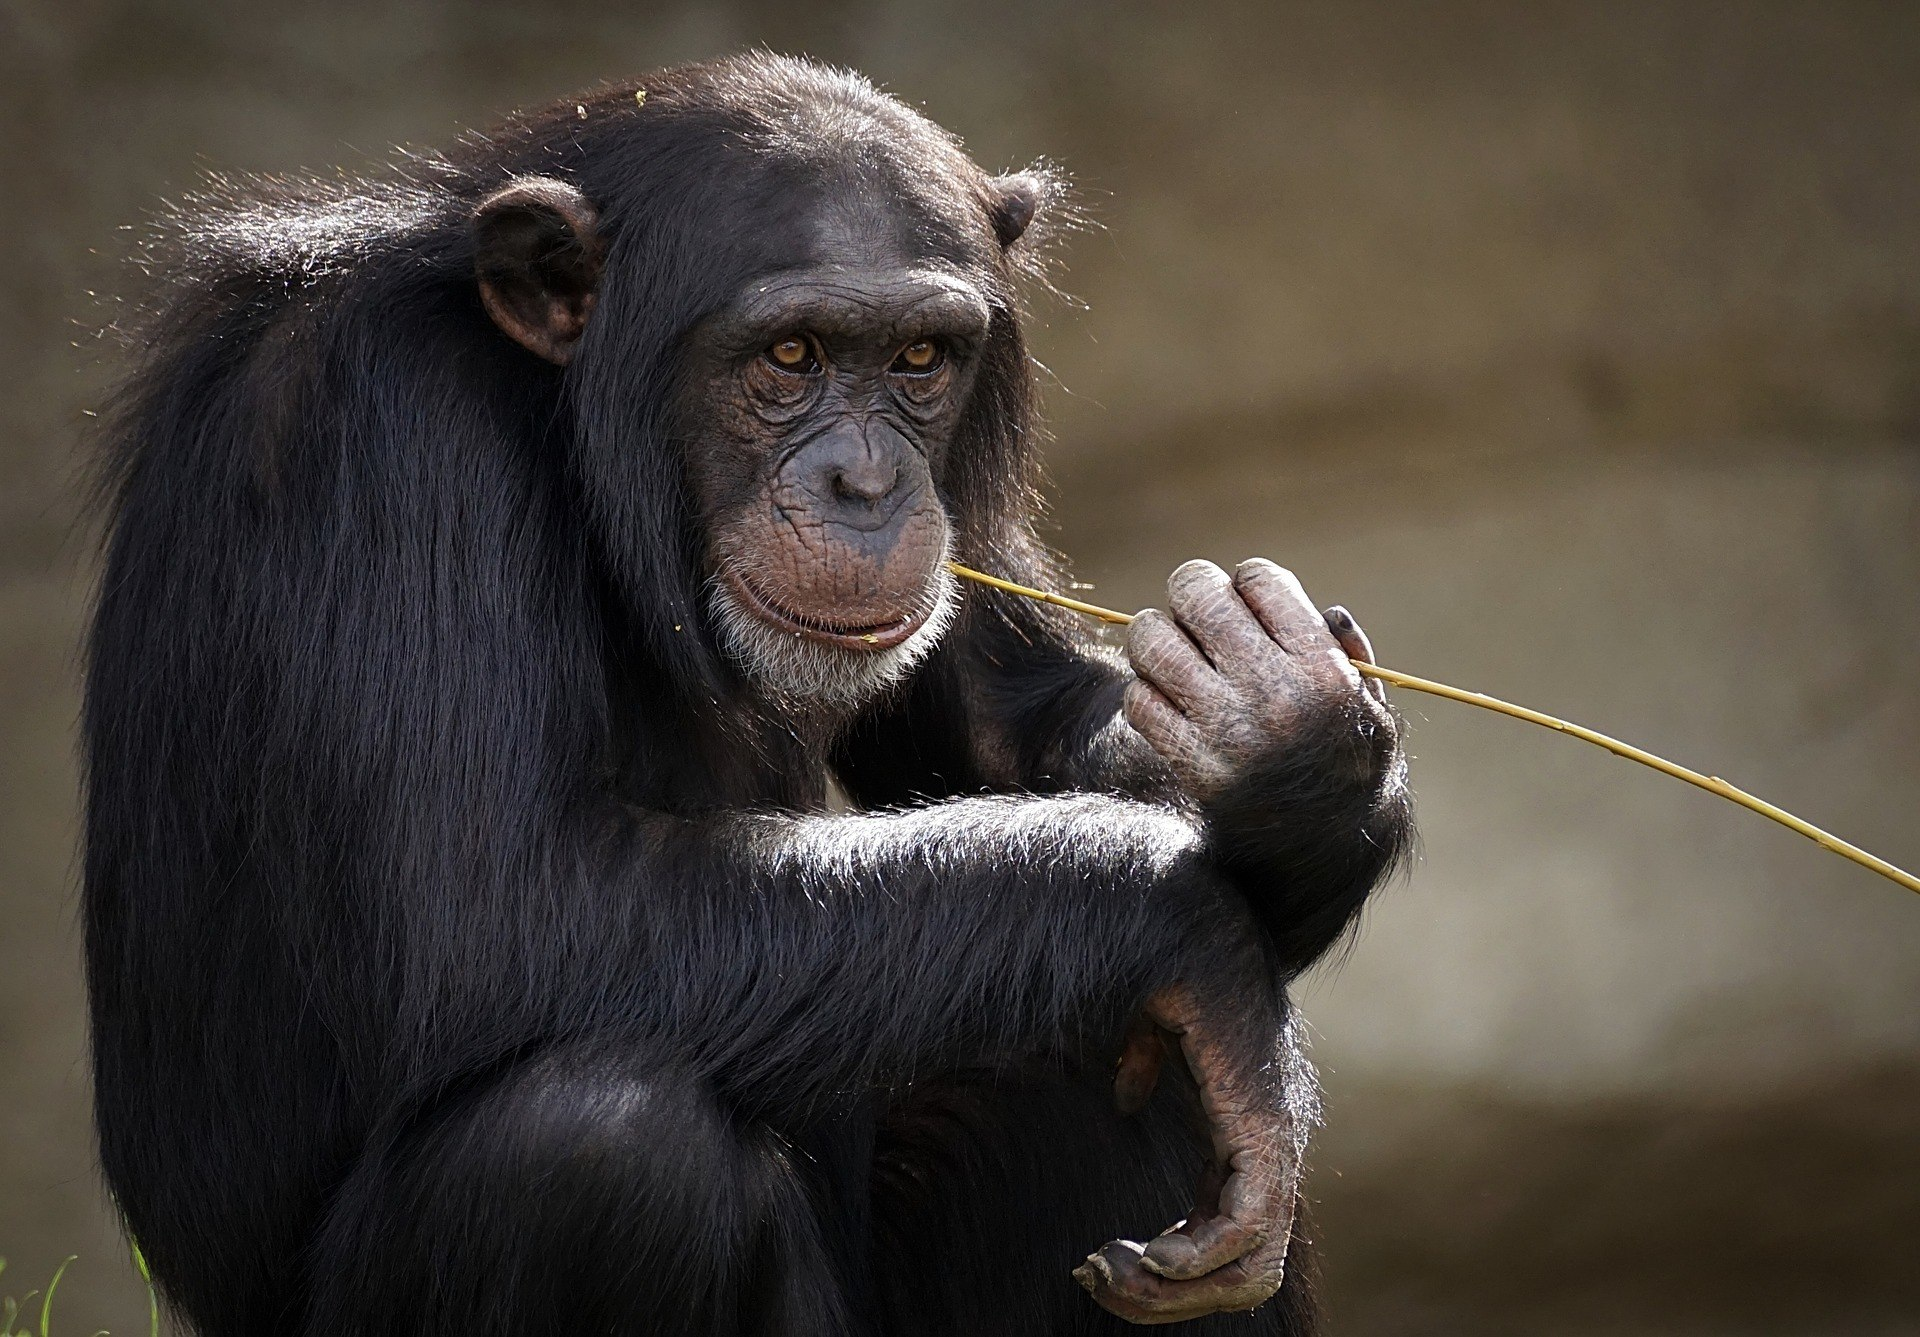 Numerous attempts have been made to teach chimpanzees to speak